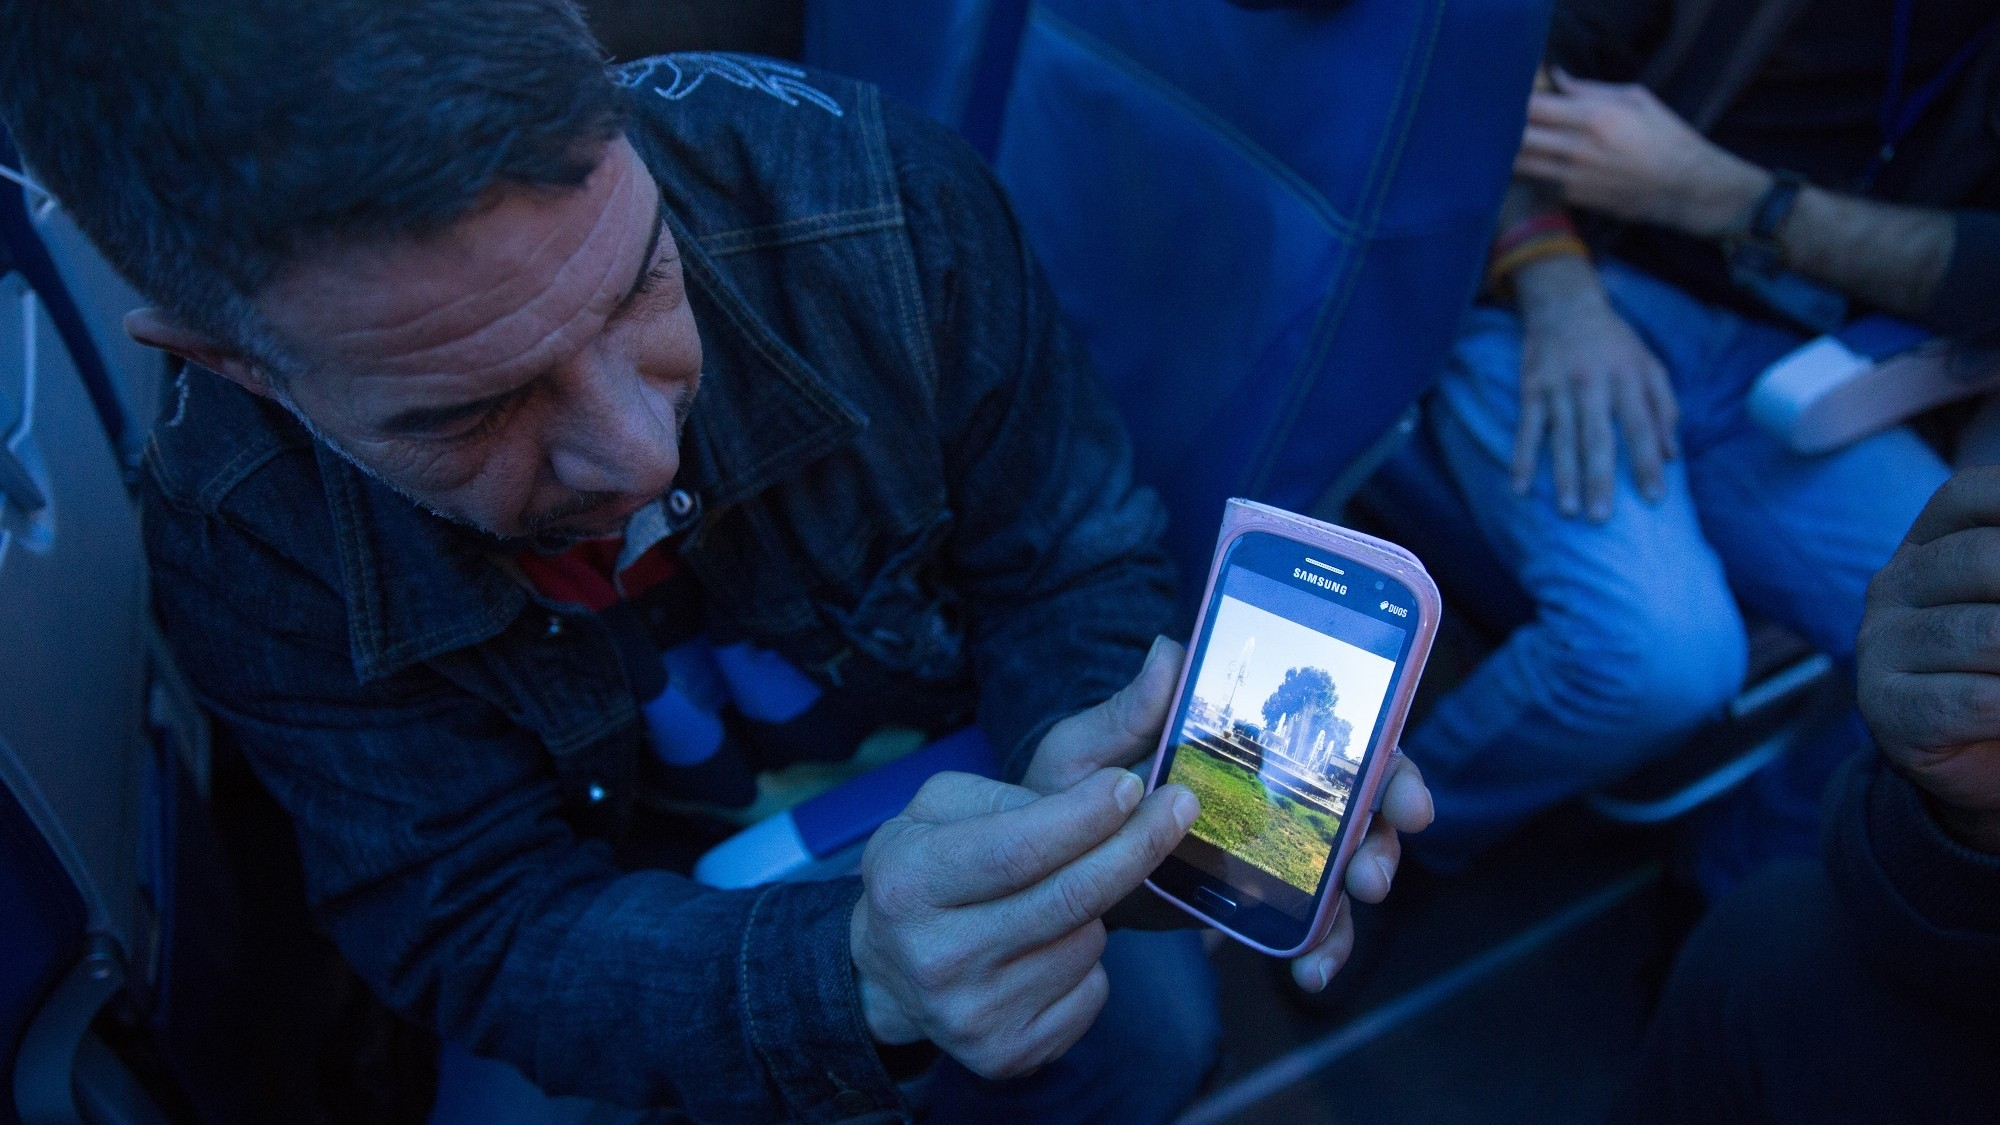 A Syrian refugee shows his hometown of Hama on his phone while en route to Canada, photo by IOM/Muse Mohammed 2015/CC BY-NC-ND 2.0